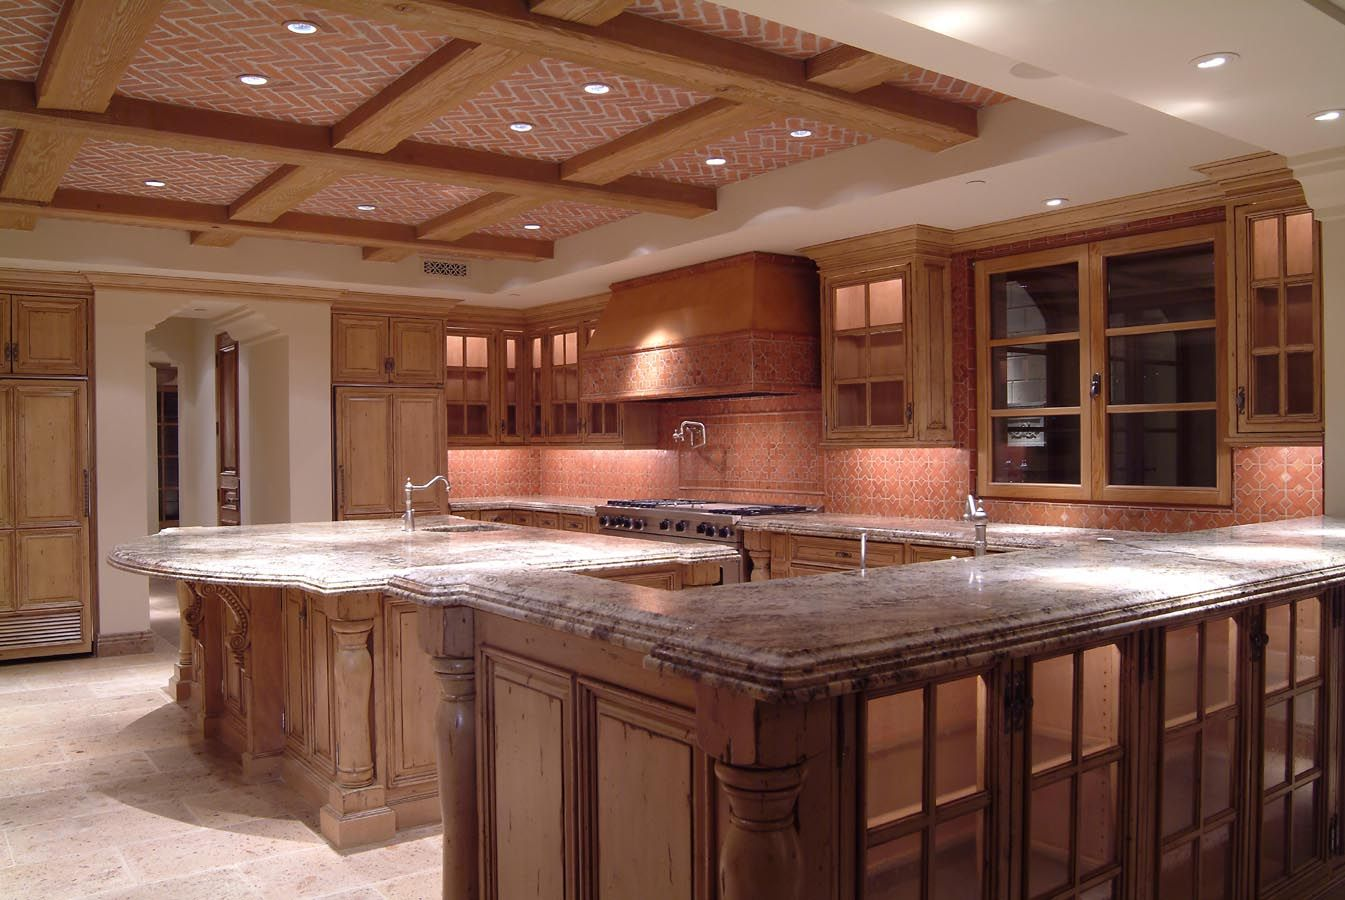 Charmant Ultra High End Custom Kitchen Cabinetry | High End Cabinetry By All Wood  Treasures || Www.allwoodtreasures.com